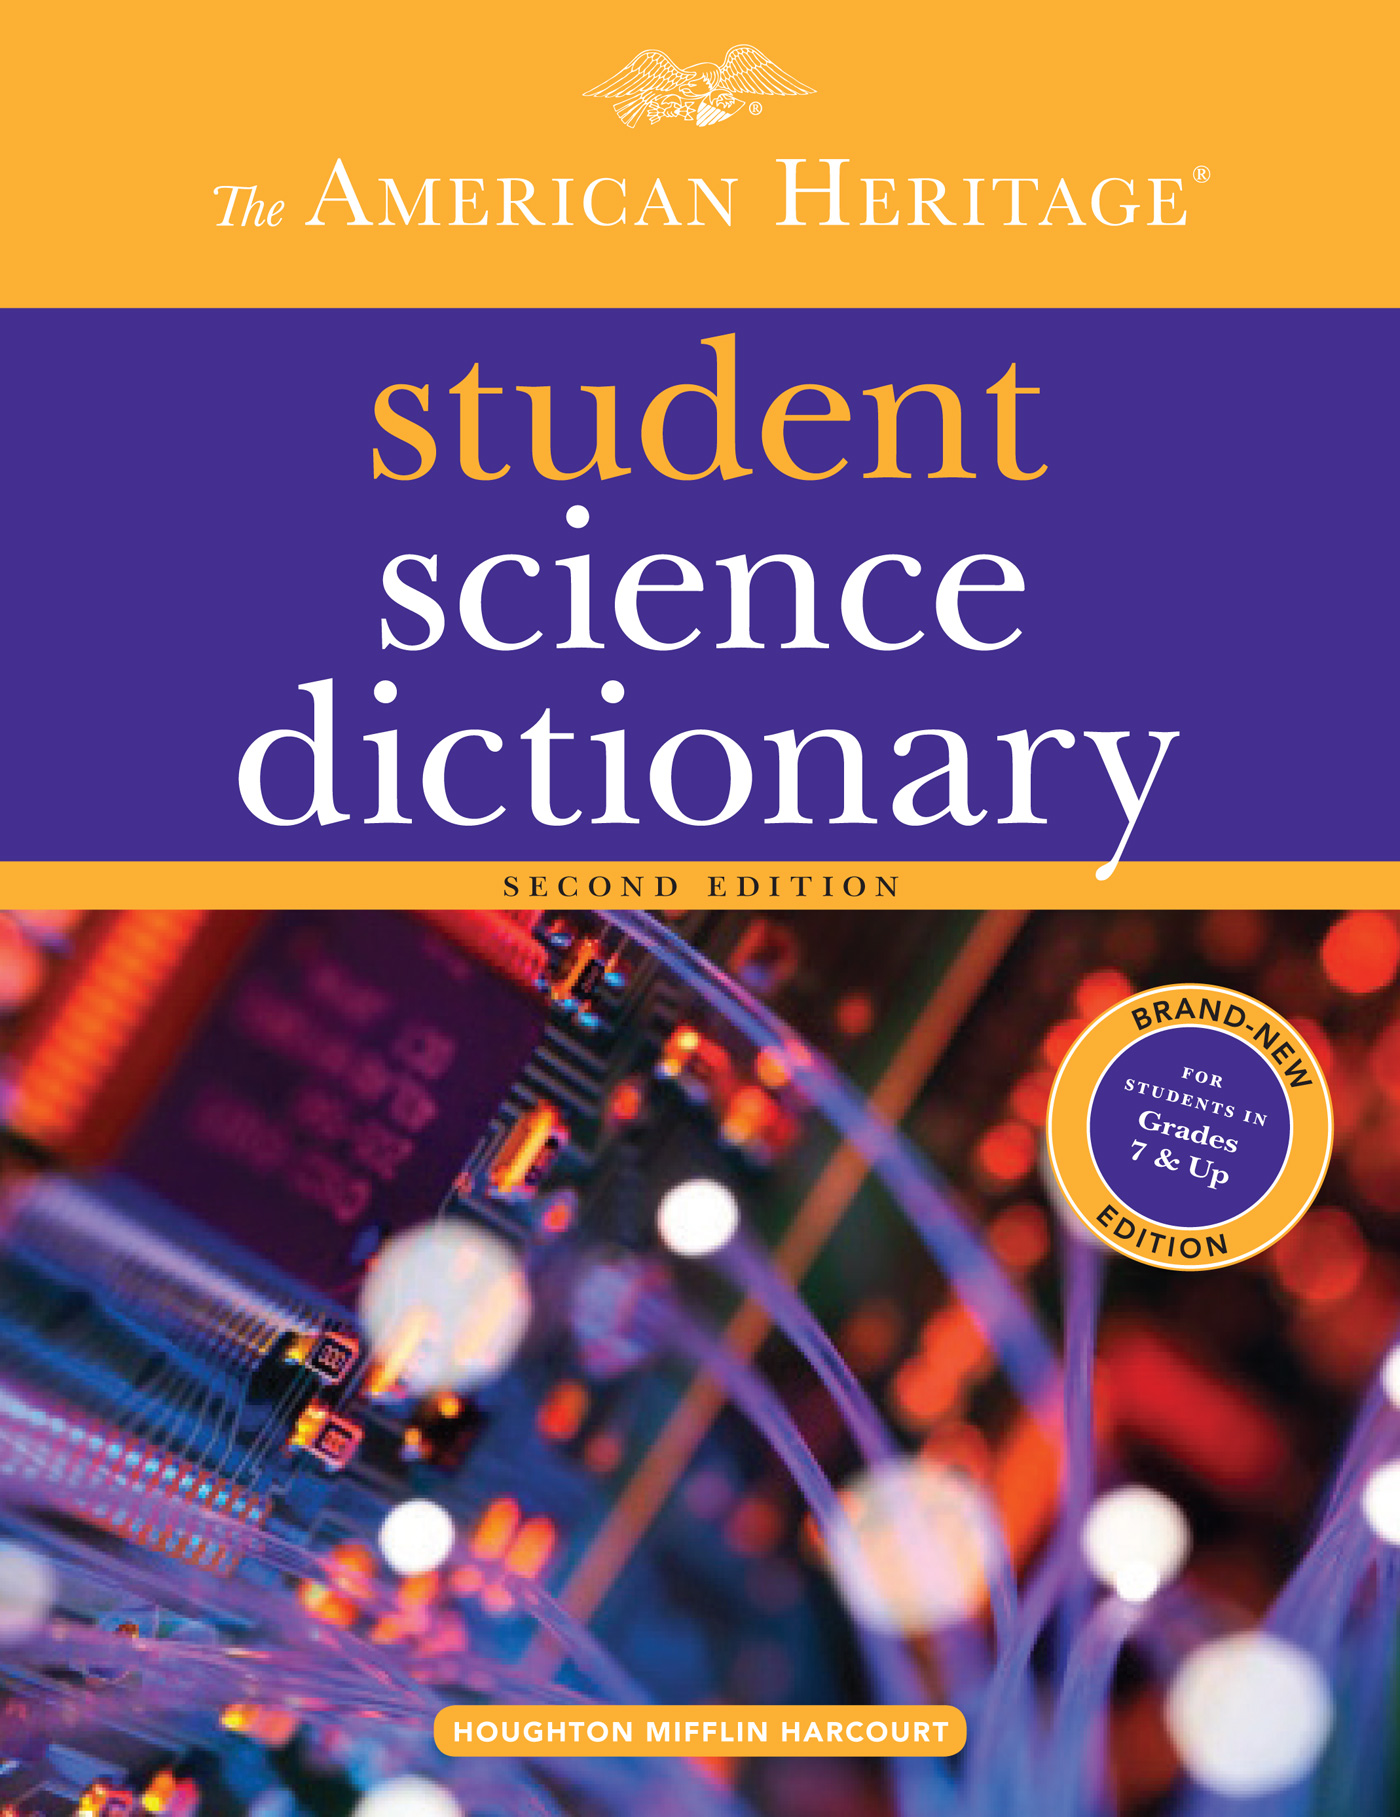 The American Heritage Student Science Dictionary, Second Edition-9780547857312